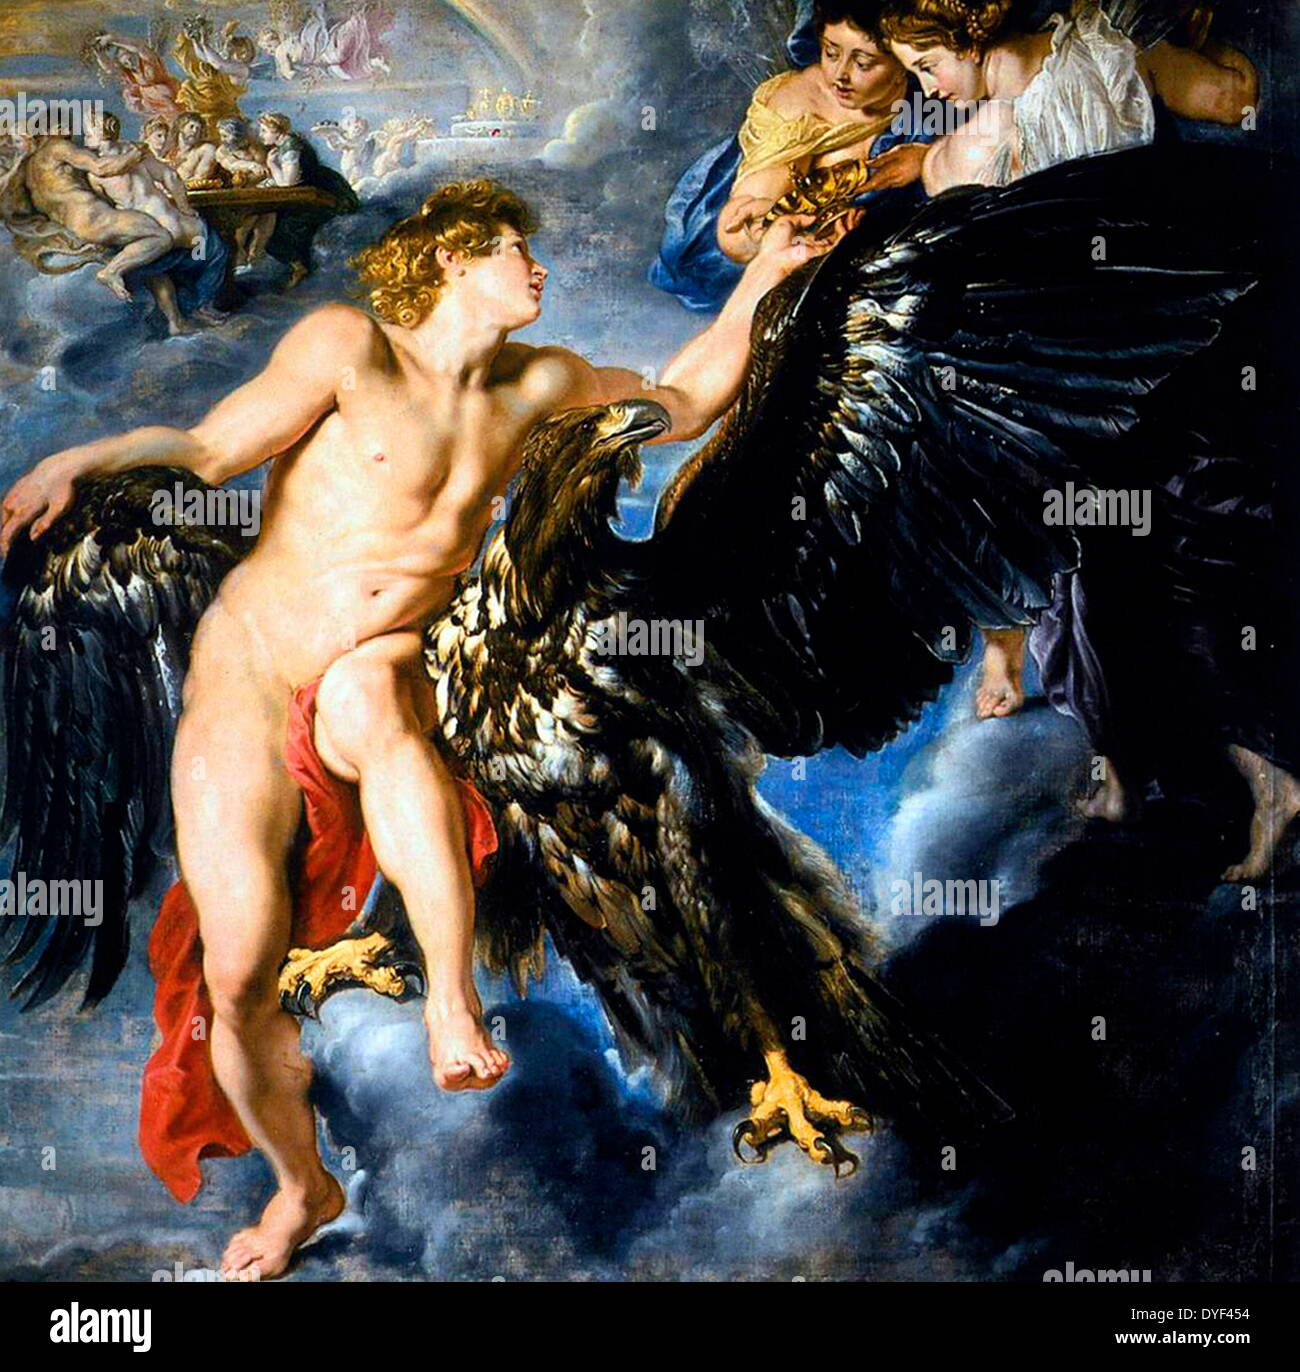 Oil painting 'Abduction of Ganymede' by Peter Paul Rubens - Stock Image